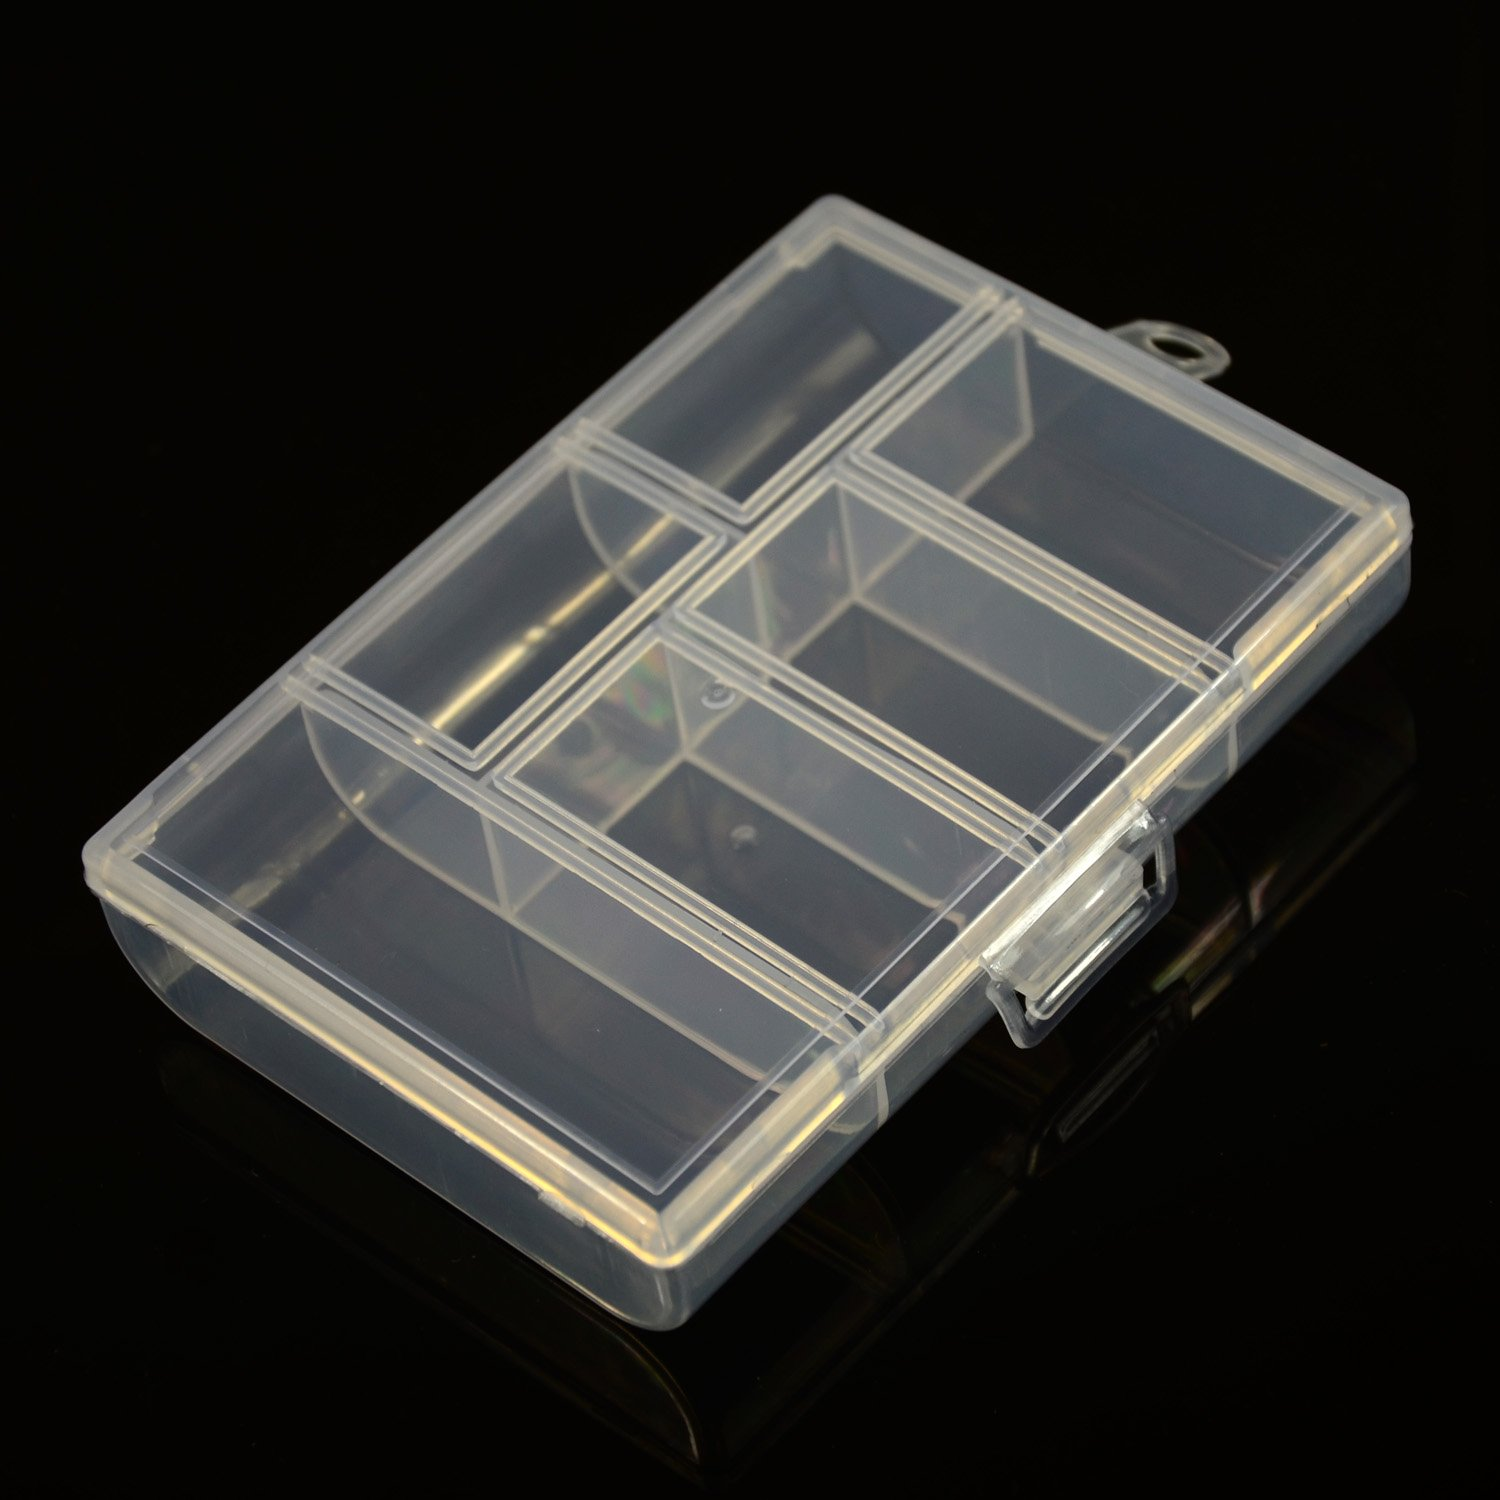 6 Grid Plastic Box Beads Organizer 3 1/4-Inch by 4 3/4-Inch JAYP HT30084CL01